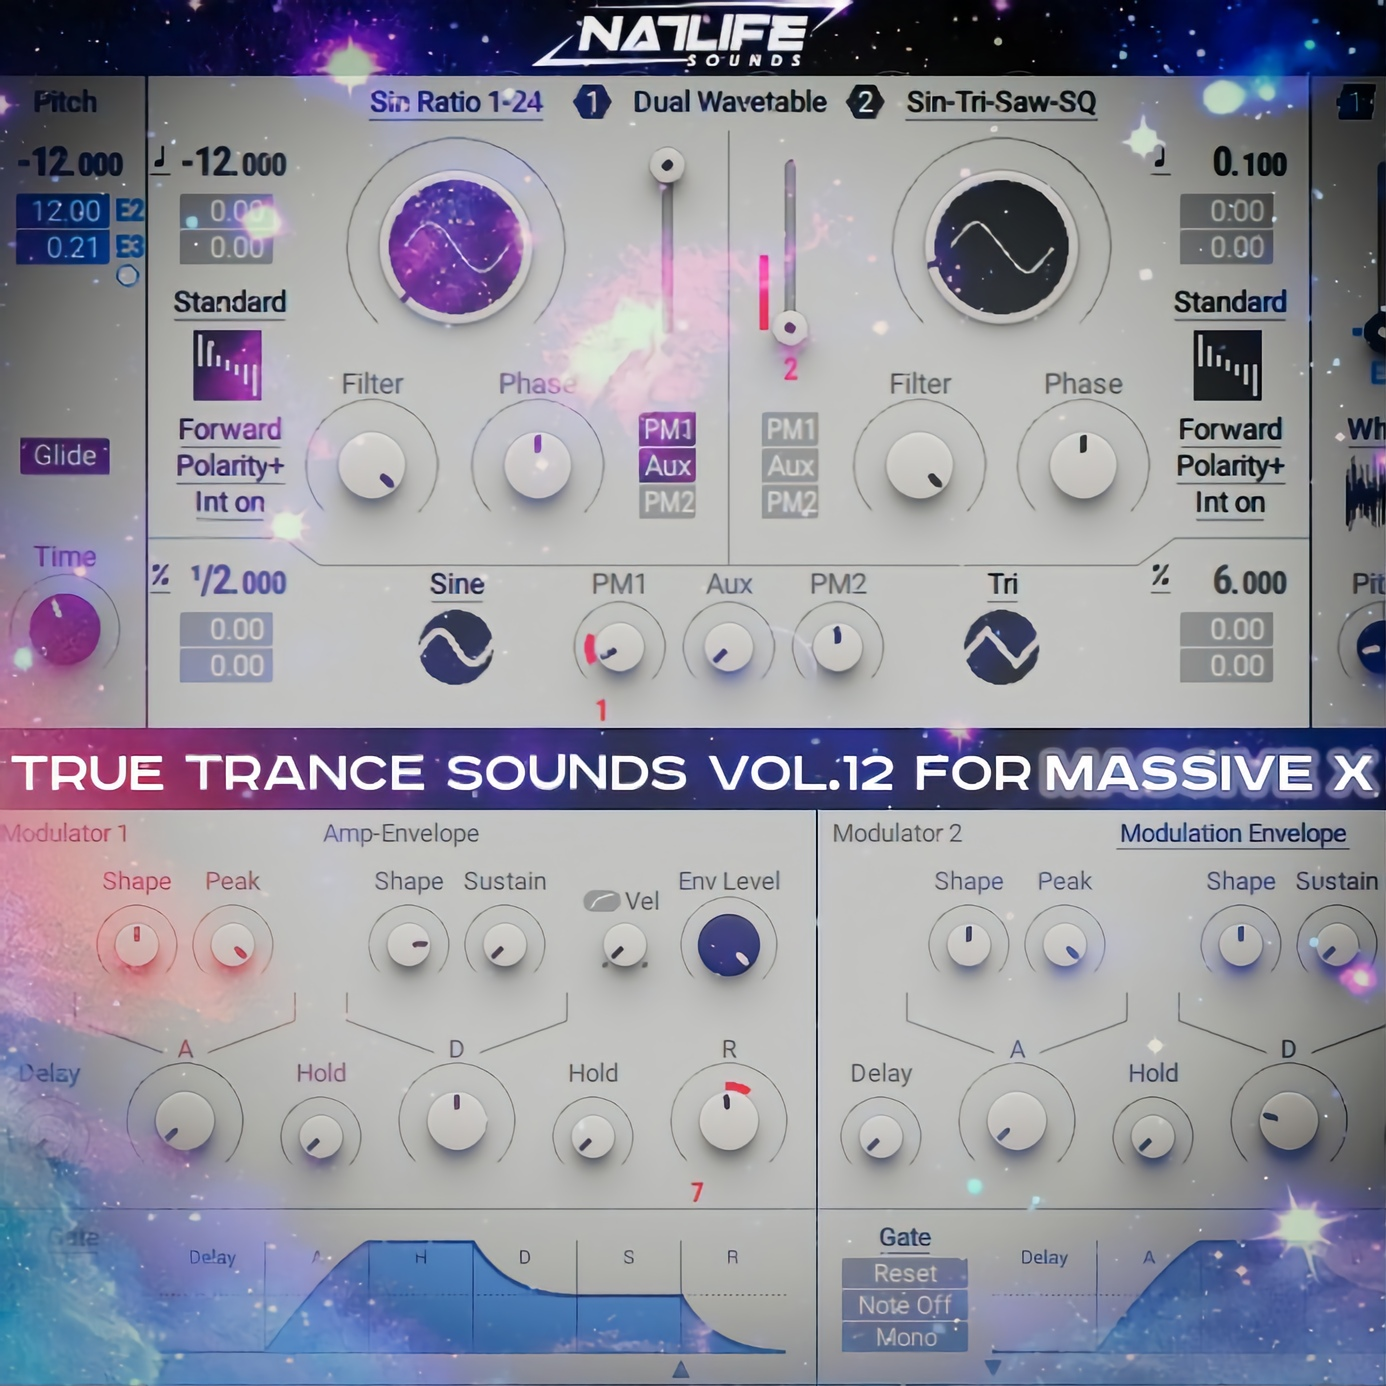 True Trance Sounds Vol.12 for Massive X